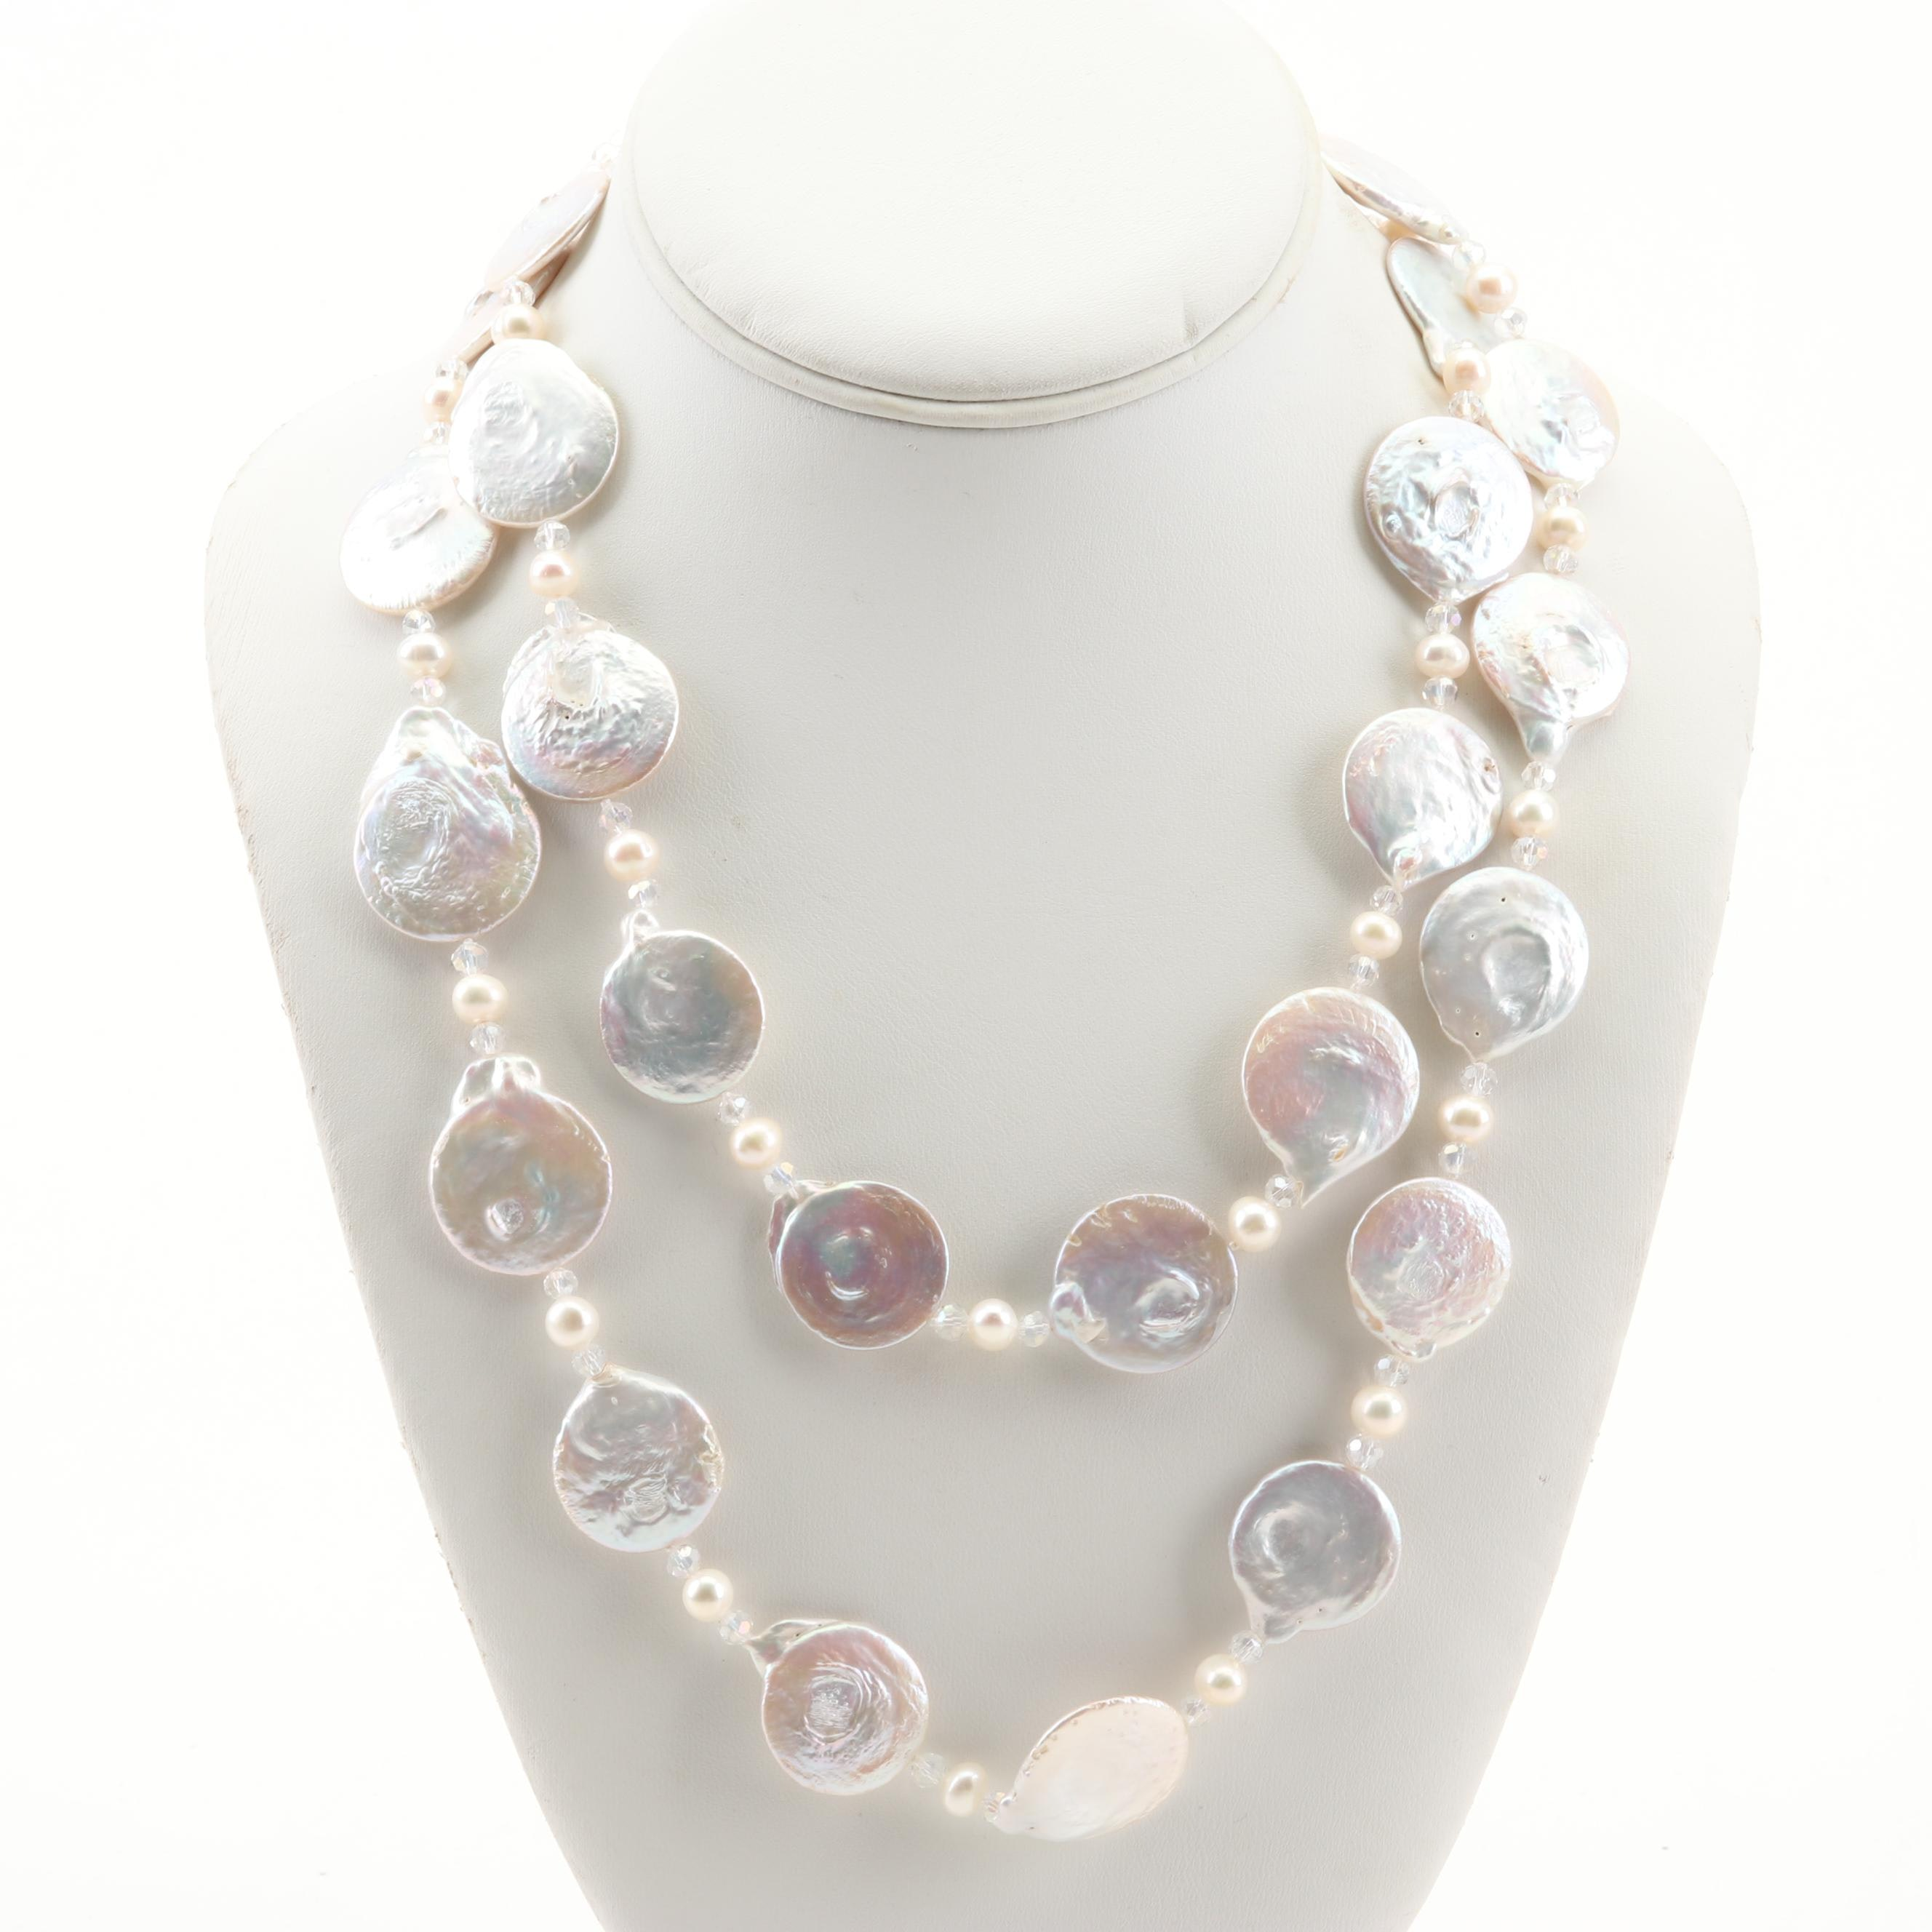 14K White Gold Cultured Coin and Oval Pearl Necklace